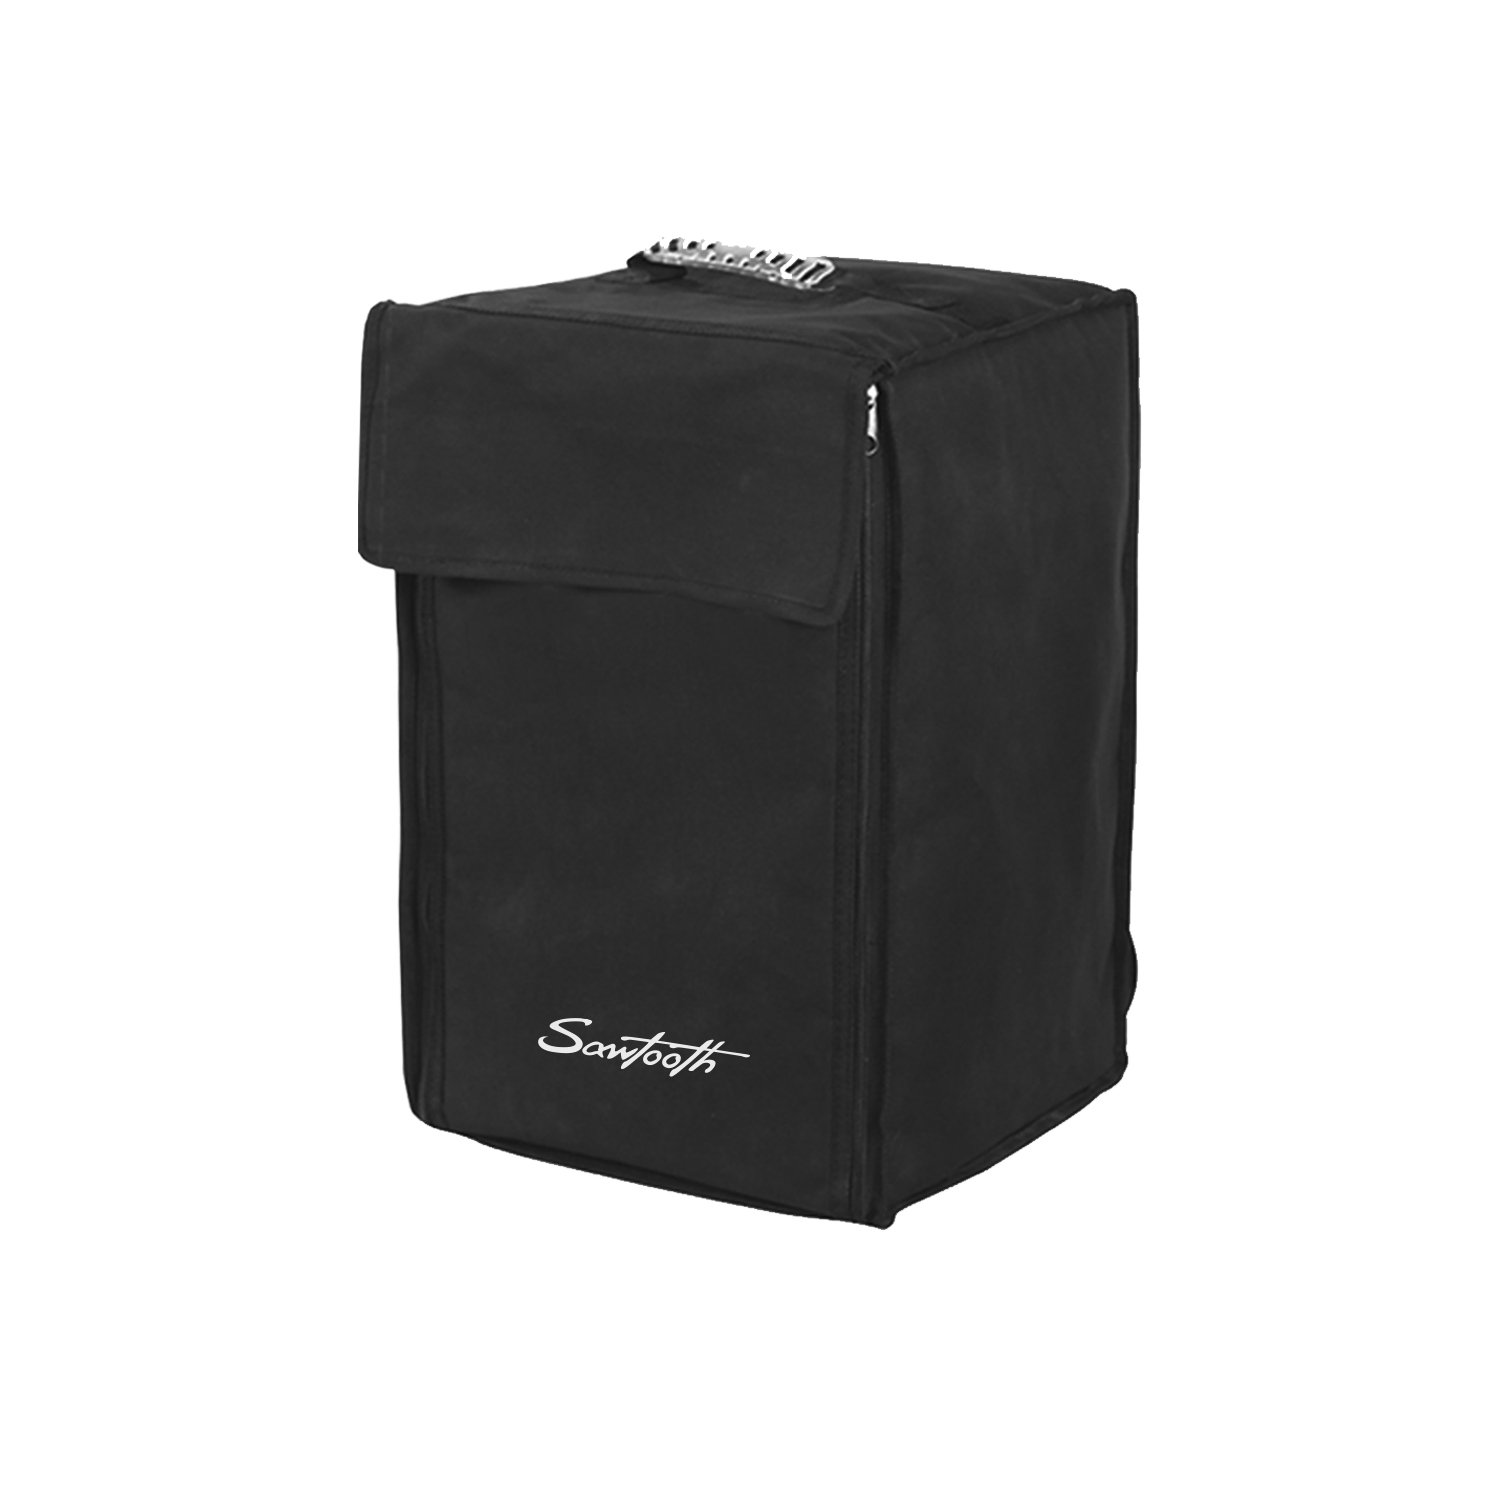 Sawtooth ST-CJ120B Cajon Birch Wood with Padded Seat Cushion and Carry Bag